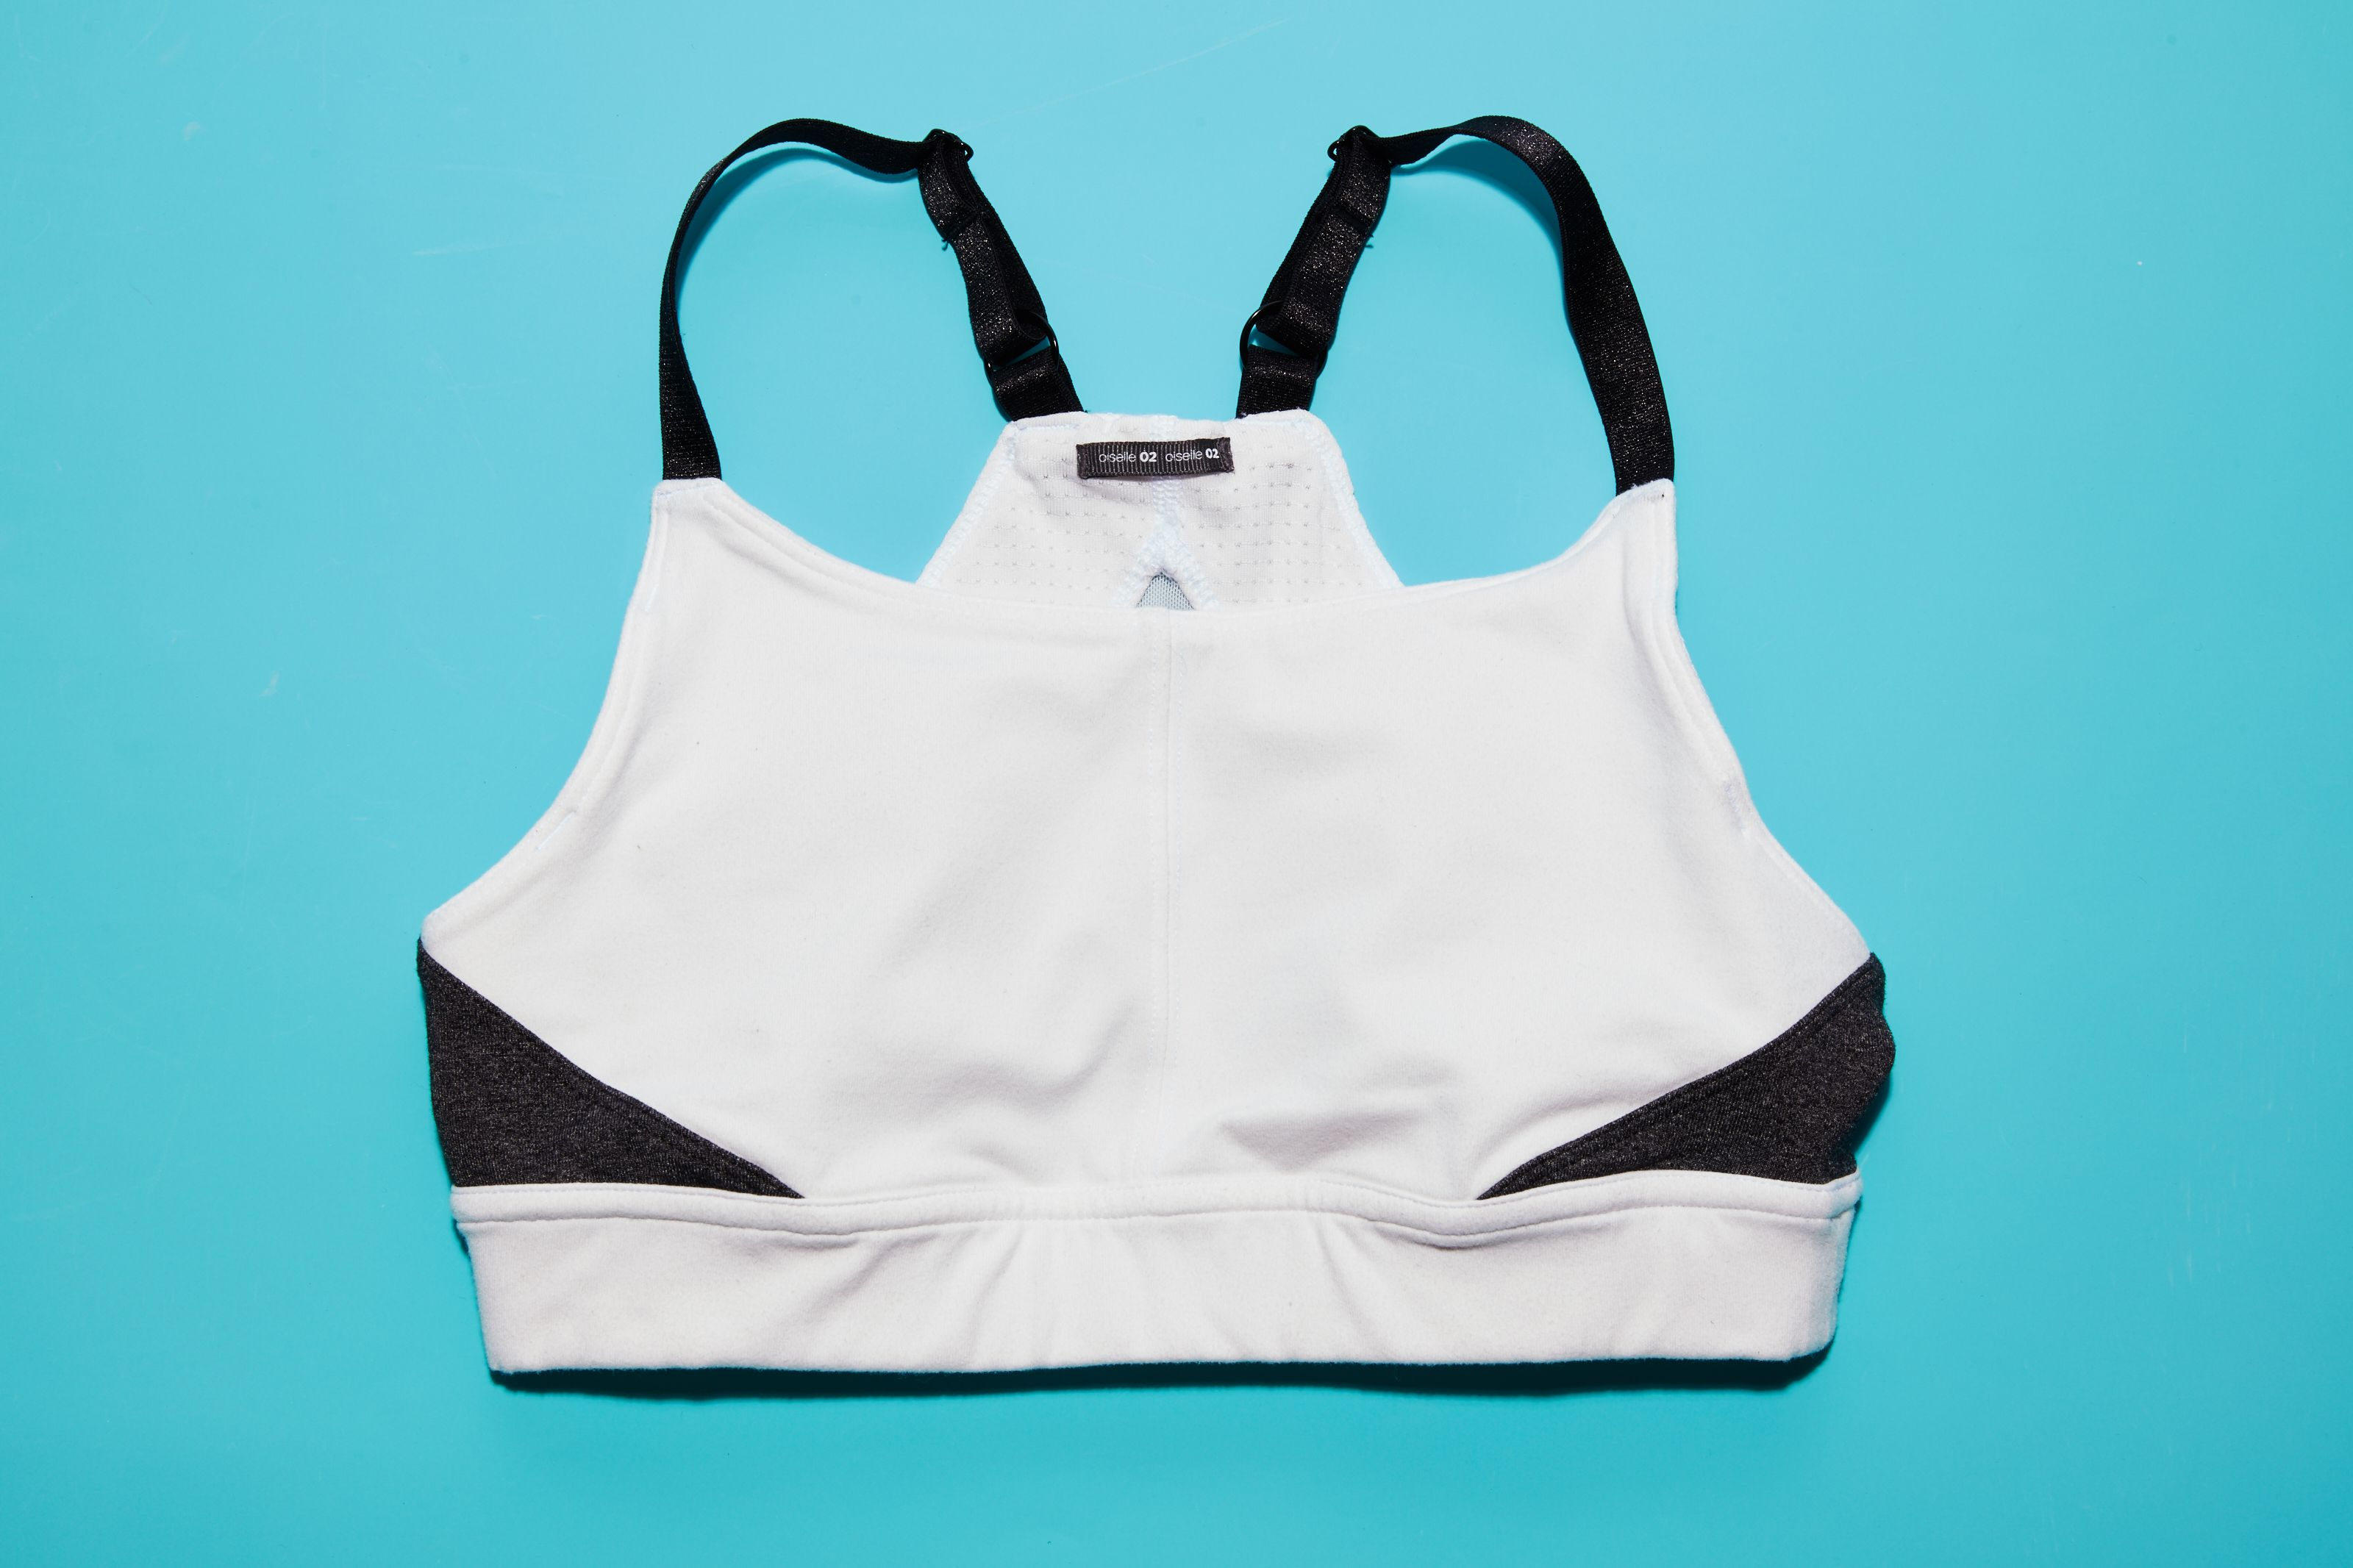 Oiselle Bae Sports Bra